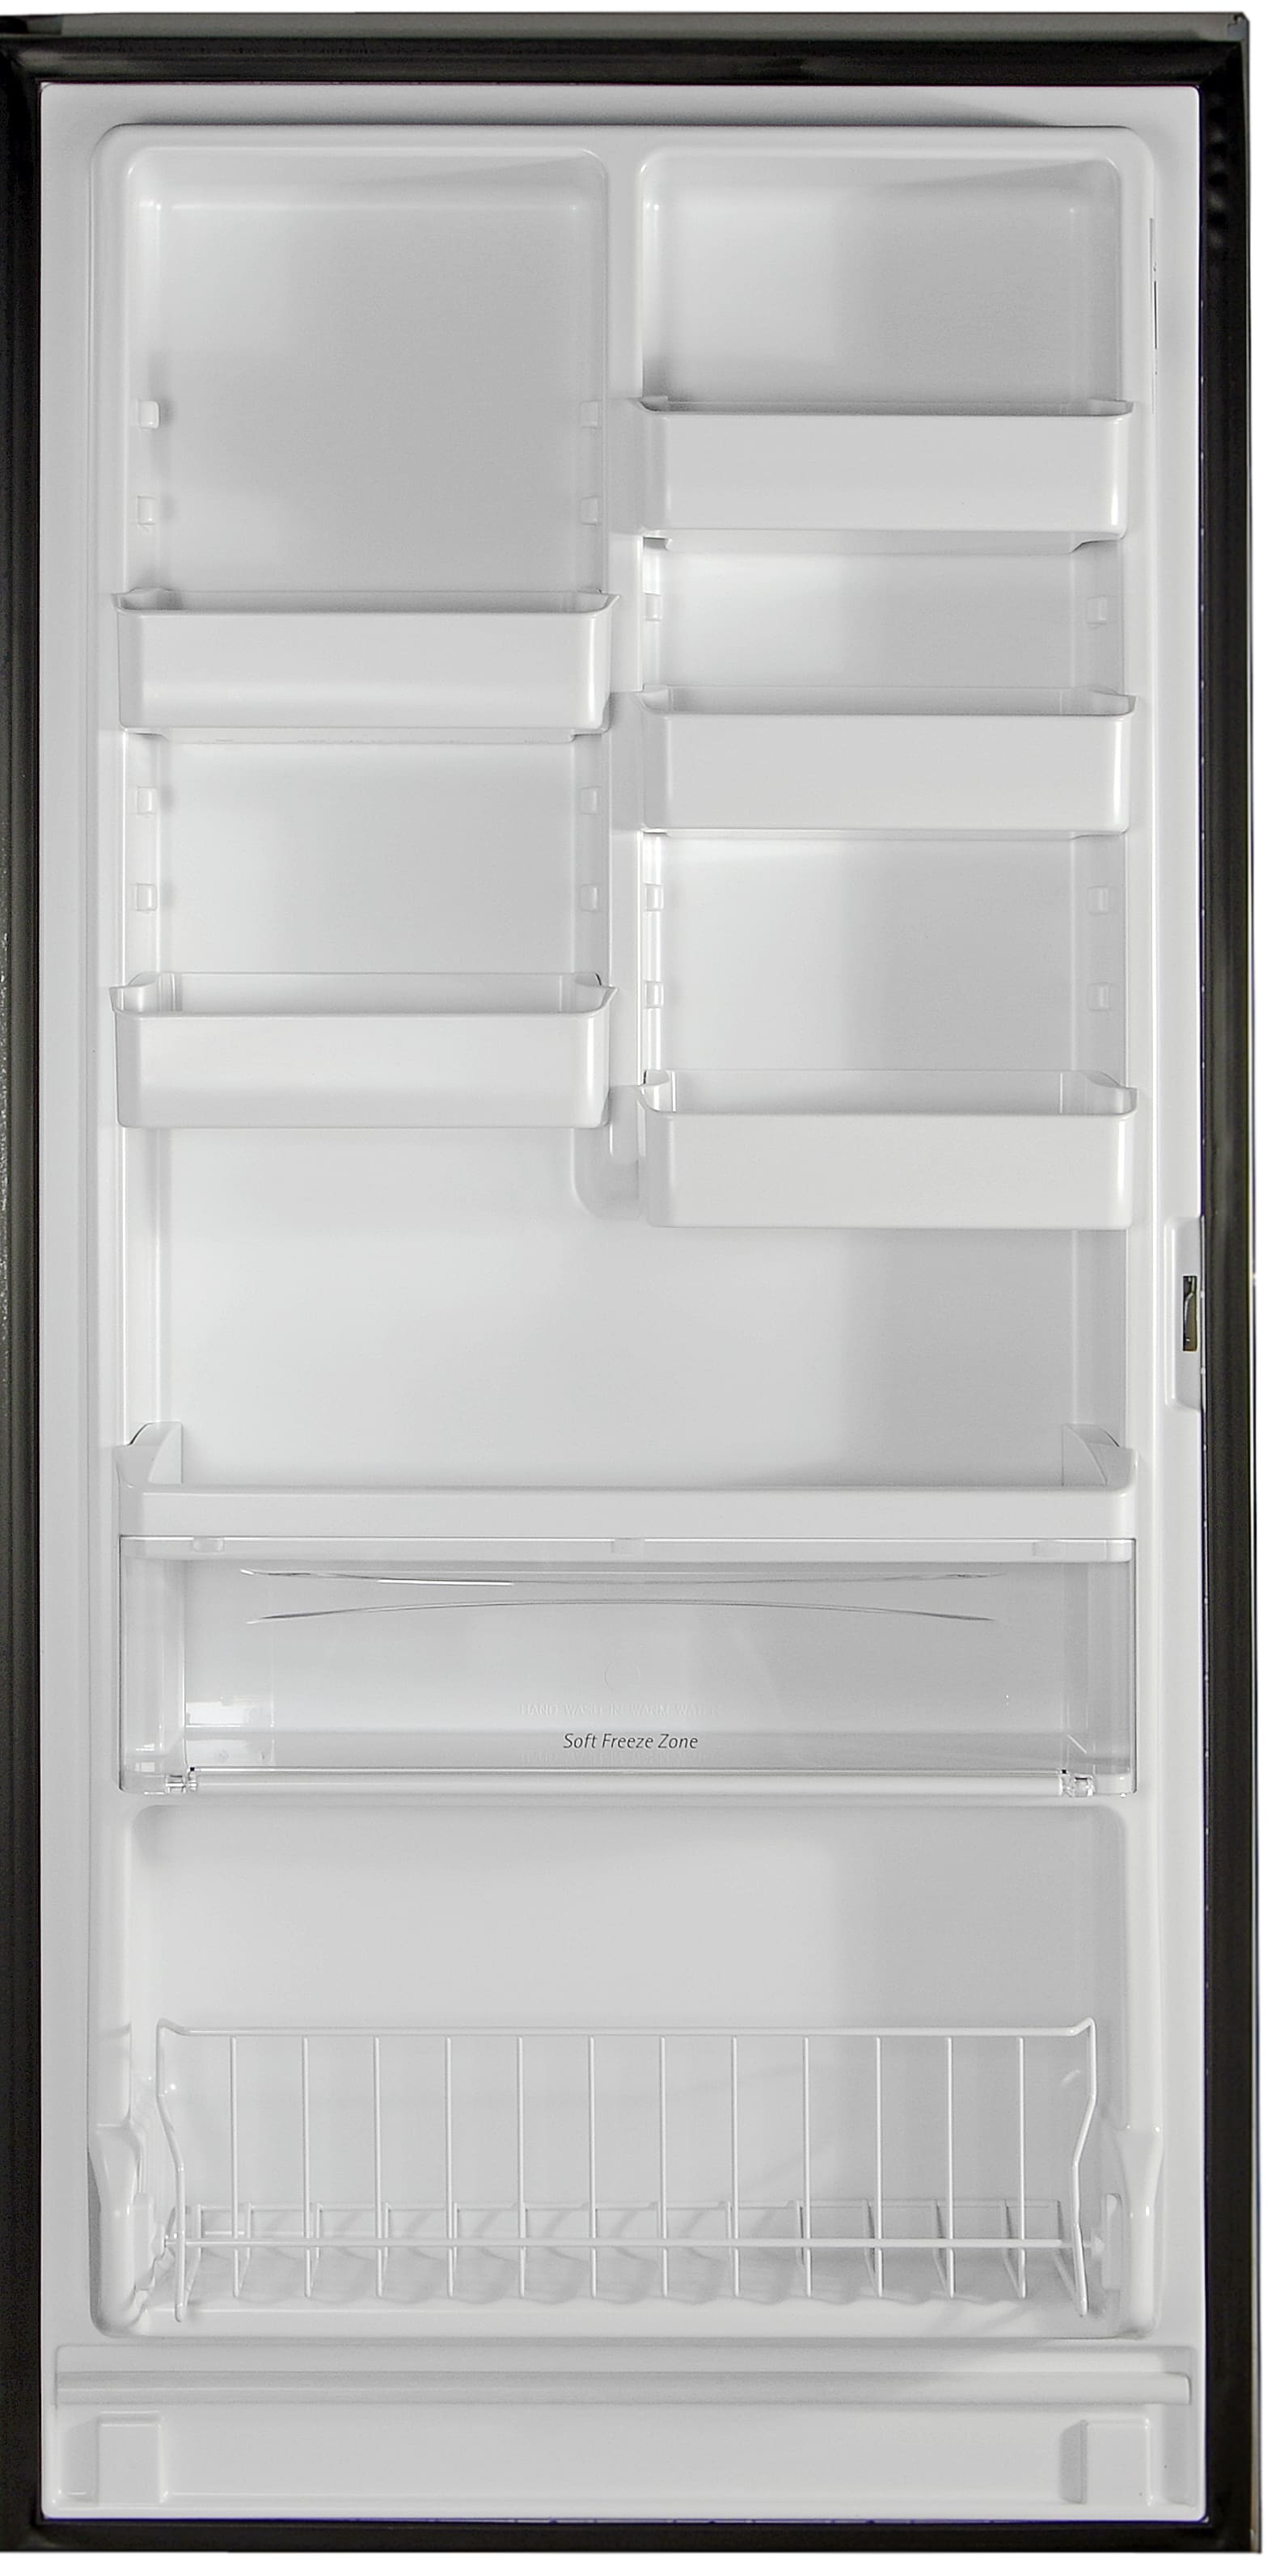 There's so much customizable storage on the door of the Kenmore Elite 28093!